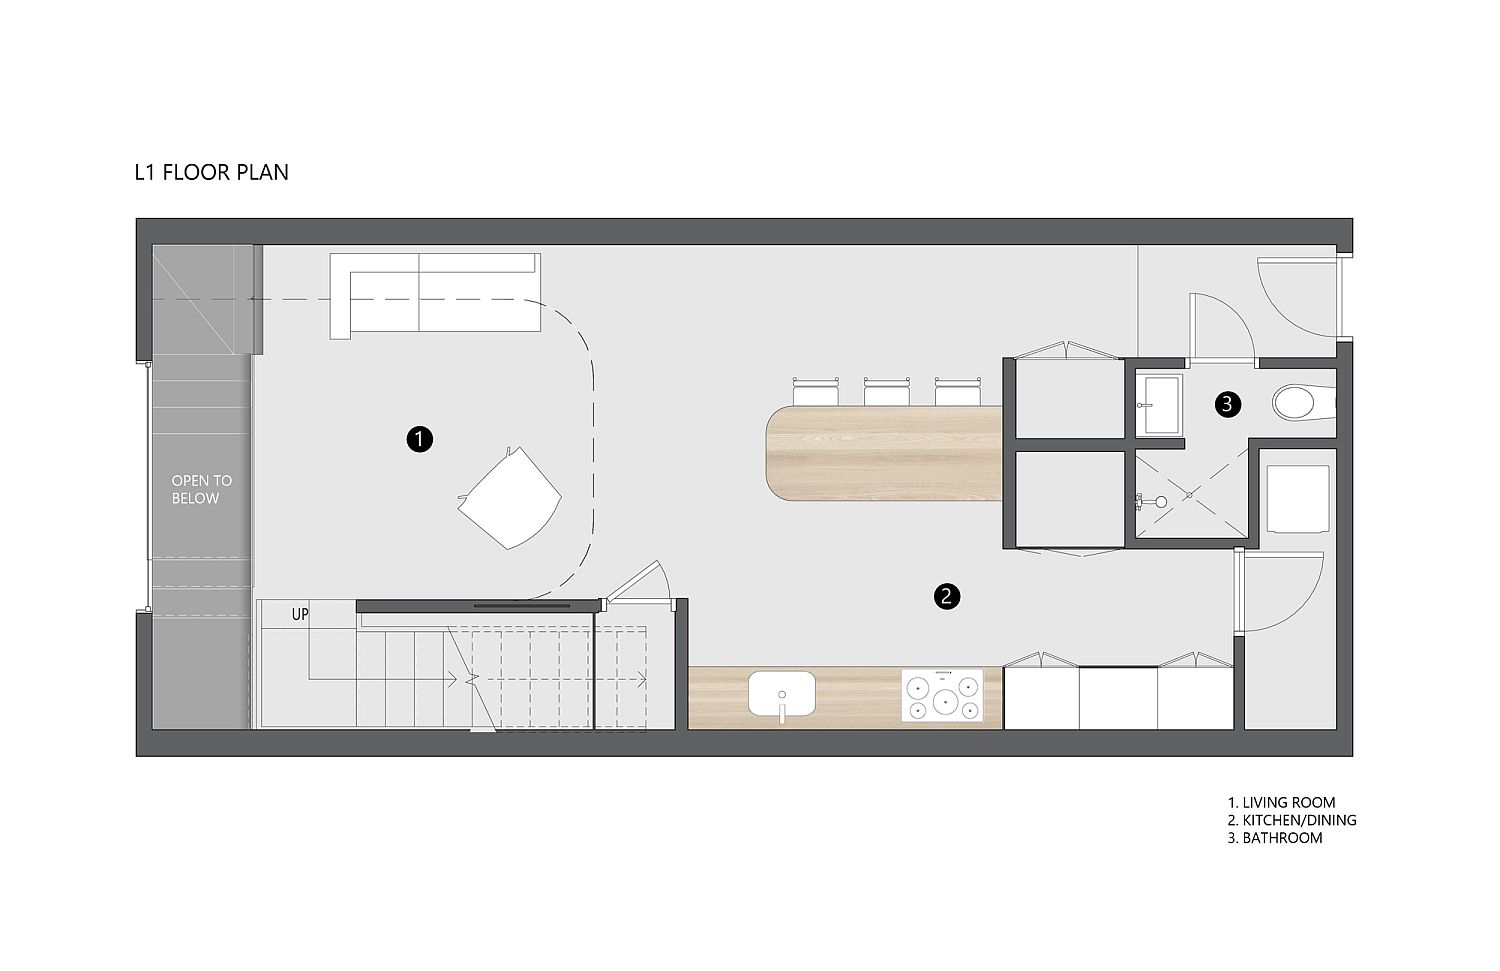 Base level floor plan of the loft sitting inside a chrch